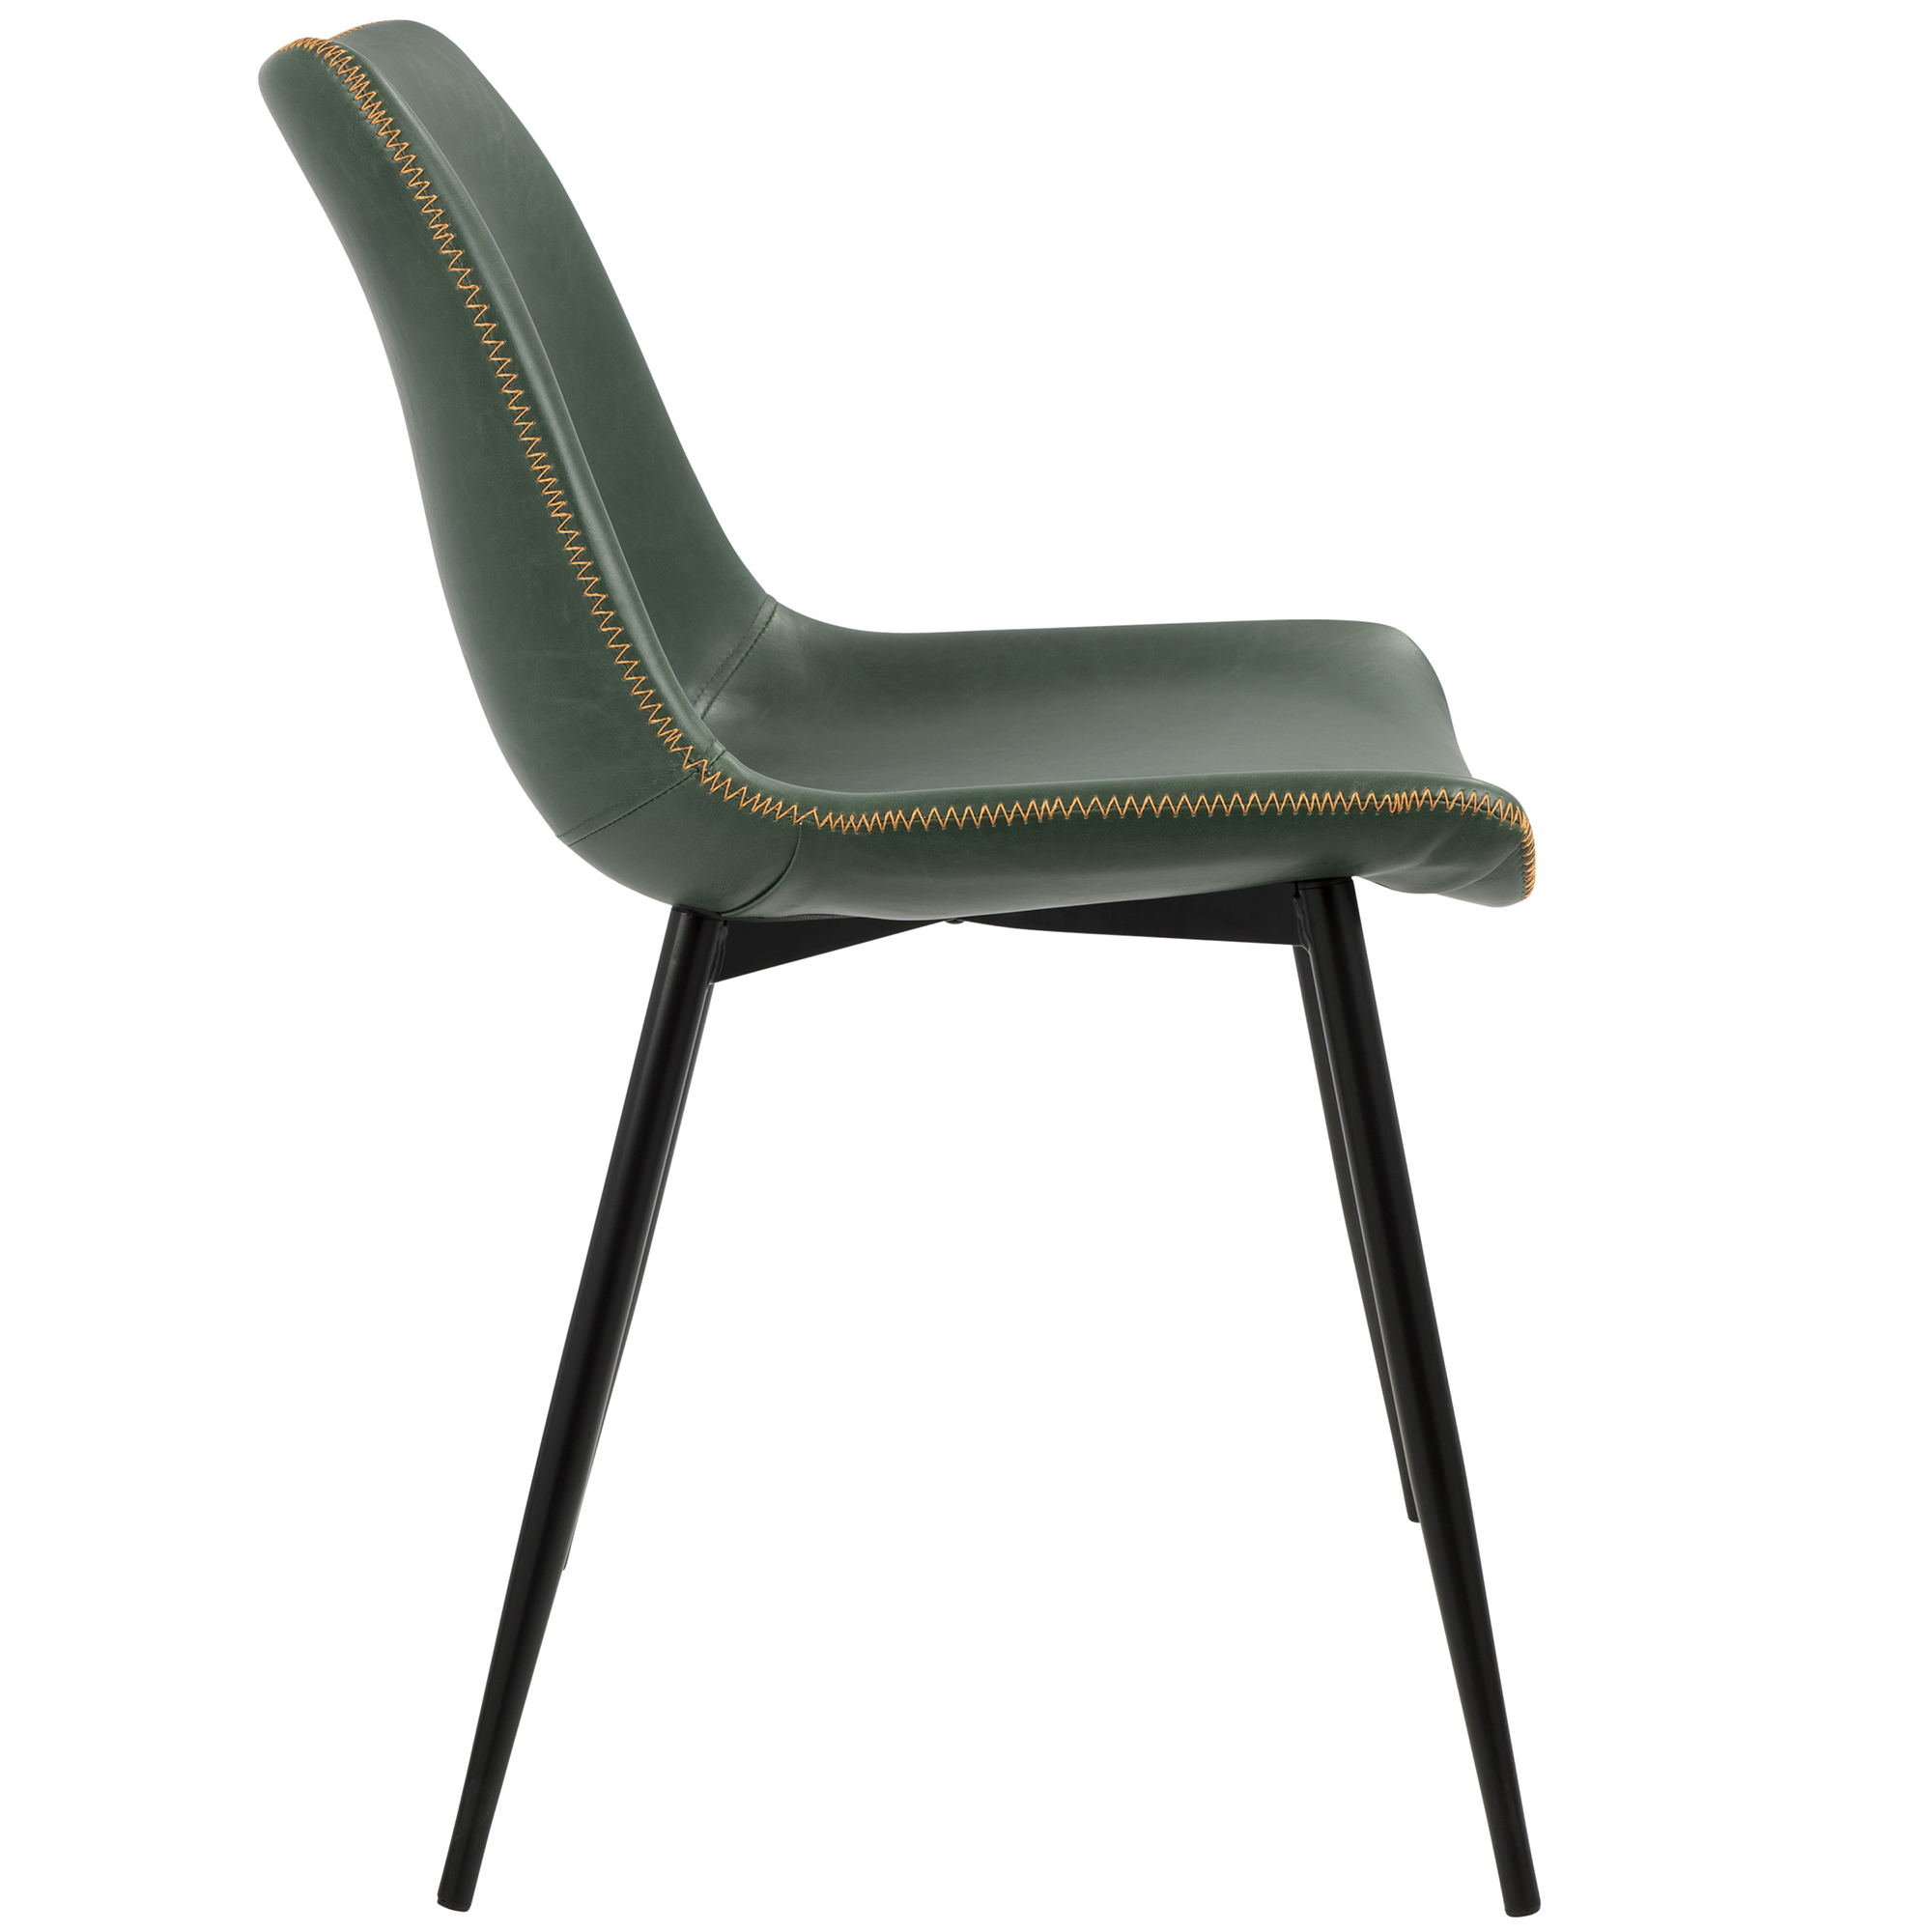 a7b84d9b25220 Durango Contemporary Dining Chair in Black with Green Vintage Faux Leather  by LumiSource - Set of 2 - Walmart.com